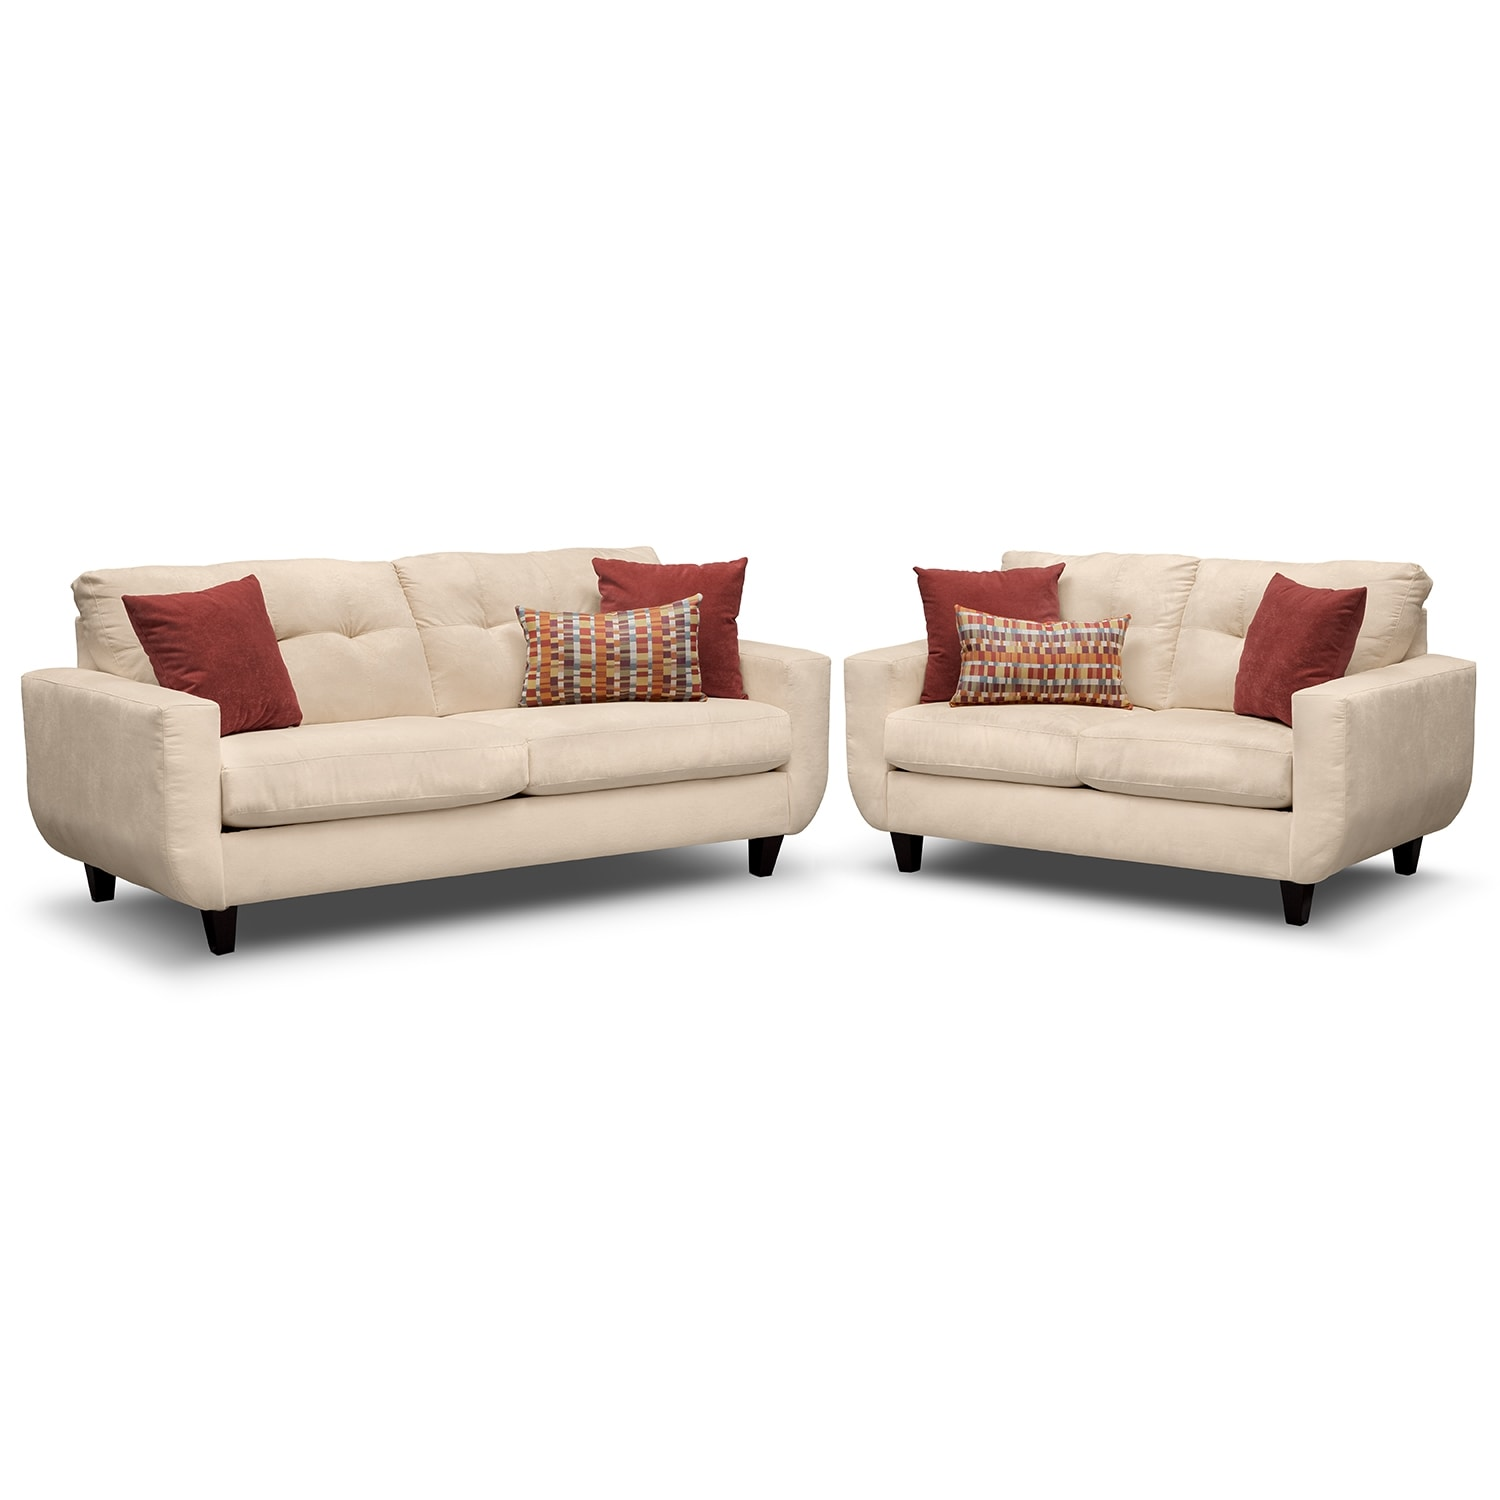 Living Room Furniture - West Village Sofa and Loveseat - Cream